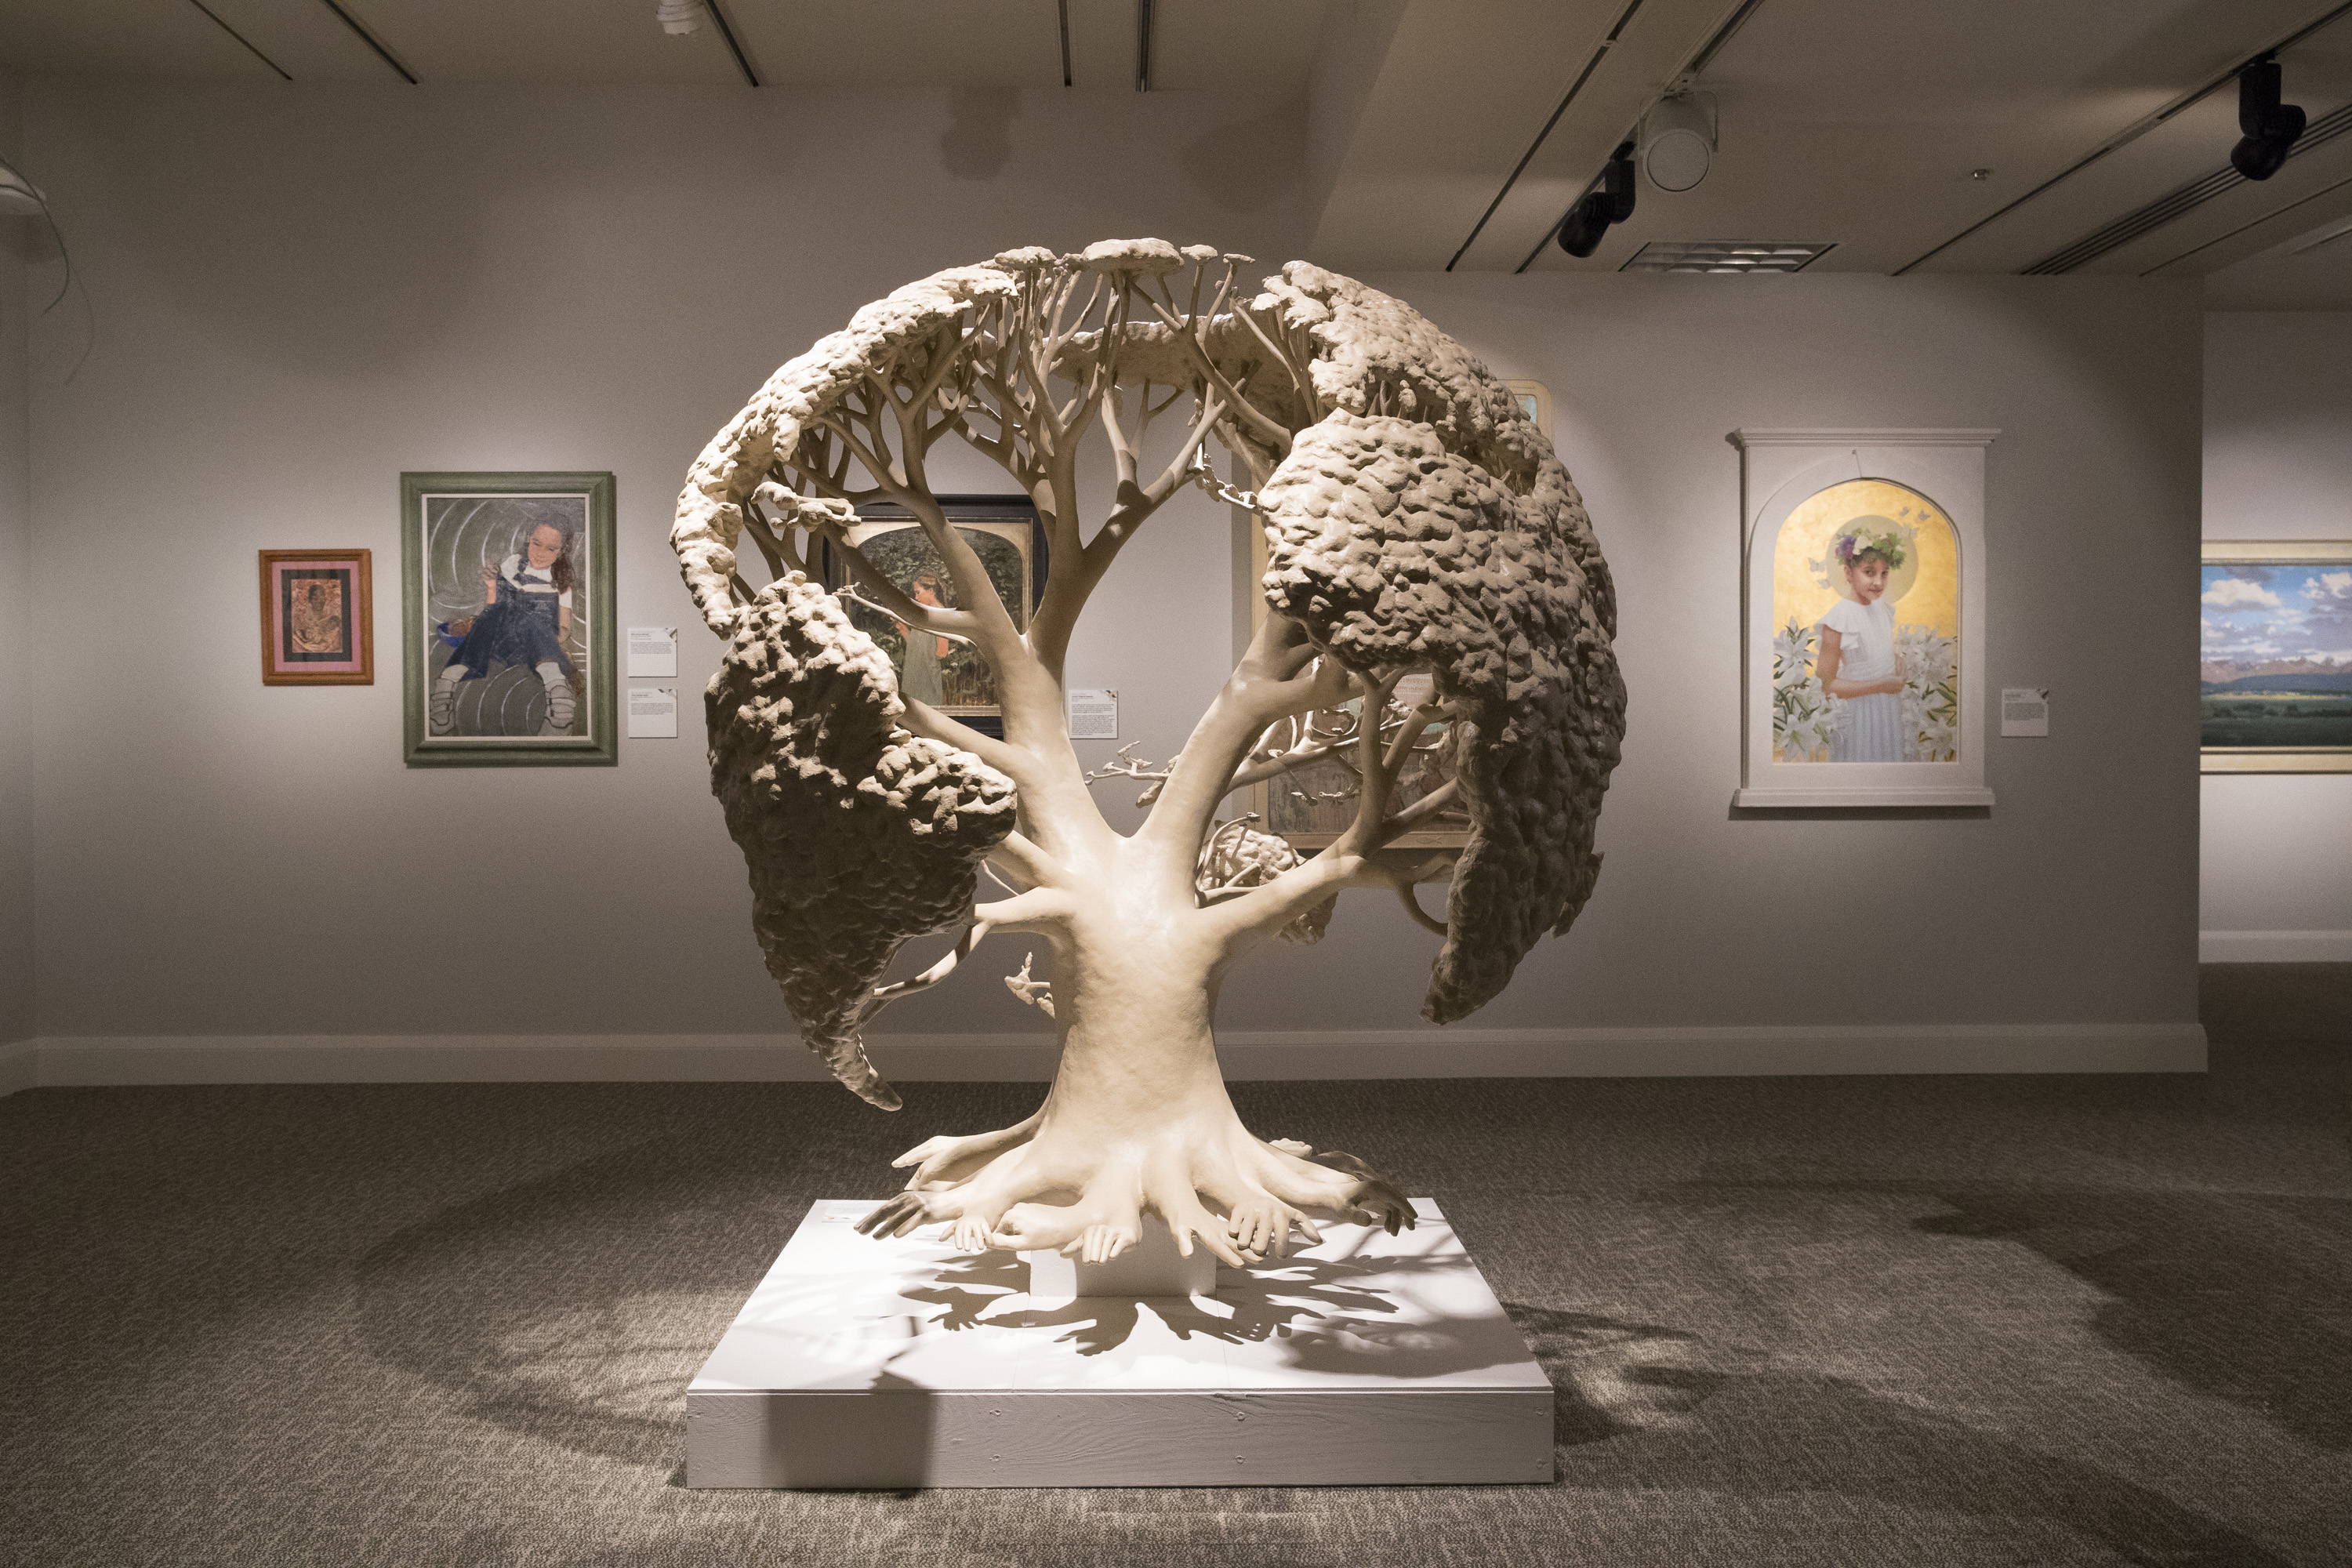 The more than 150 pieces of art combine to form the Church's 11th International Art Competition represent a variety of media, from painting and sculpture to woodcarving and photography.